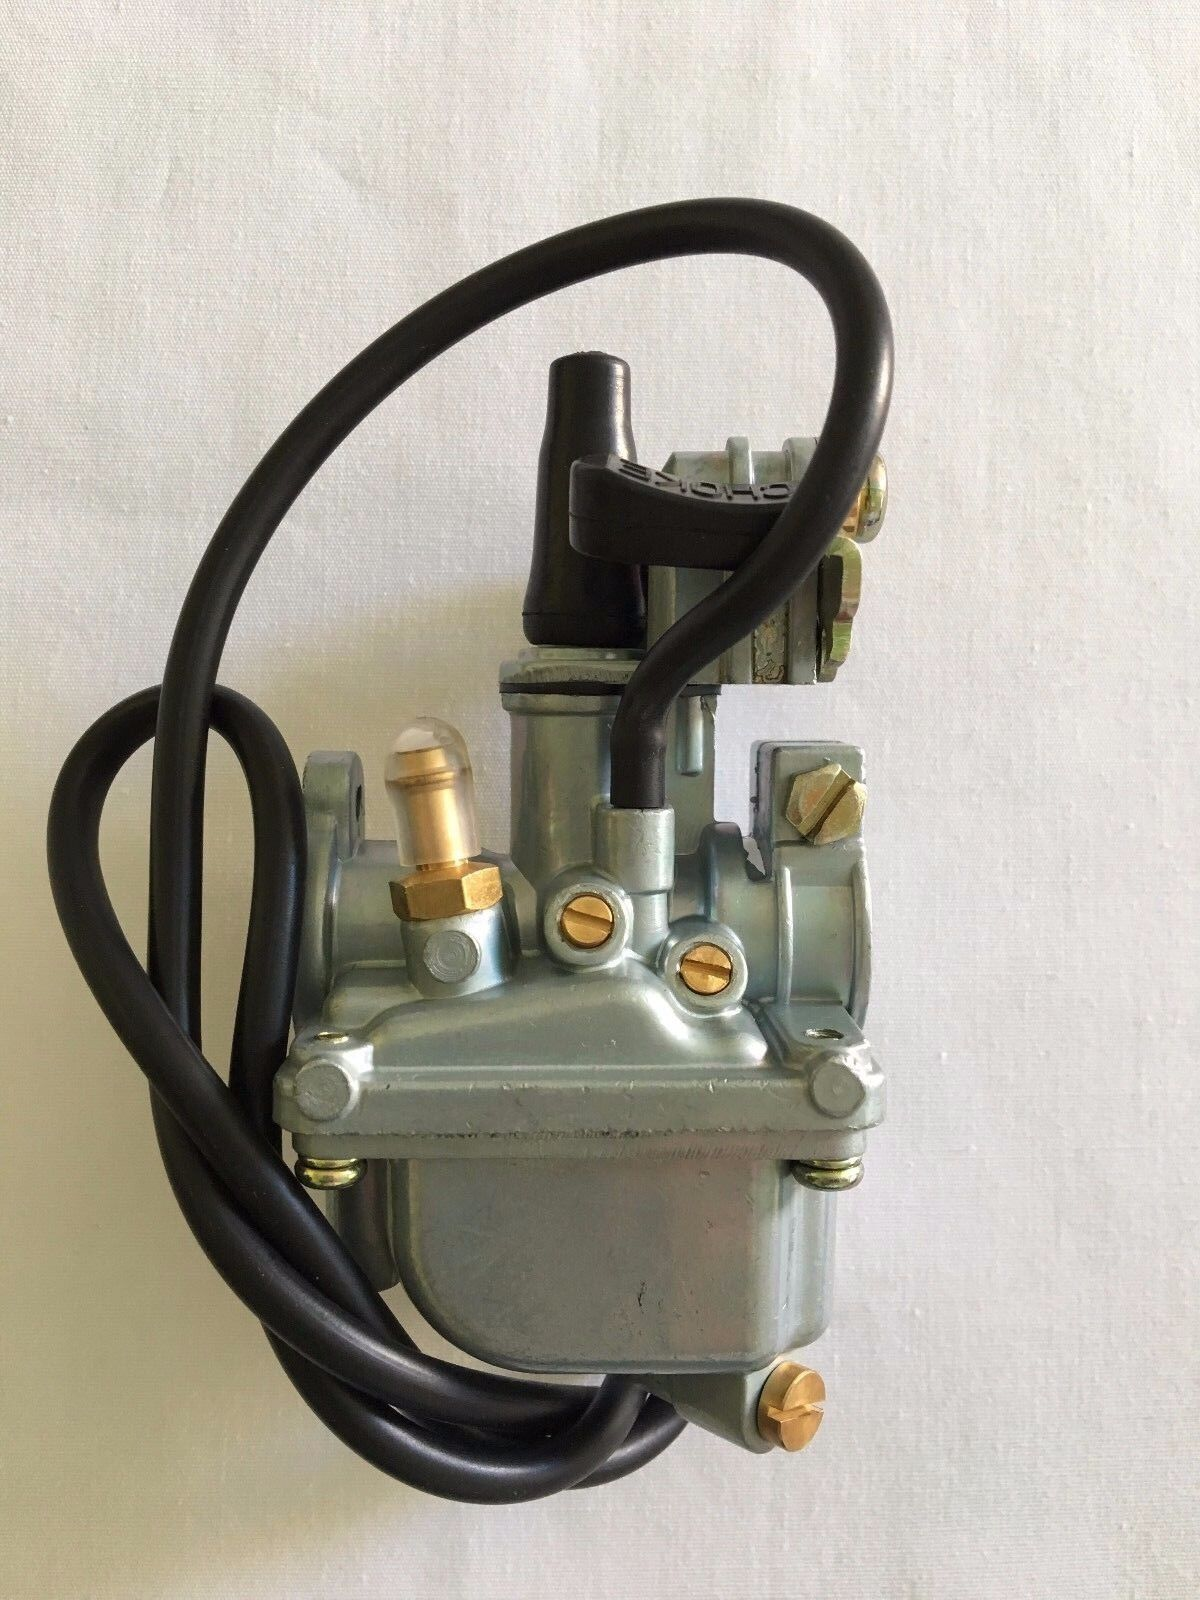 Carburetor For Suzuki Lt A50 Atv Quad 2002 2003 2004 2005 Ebay 2008 Taotao Ata 110 Wiring Harness